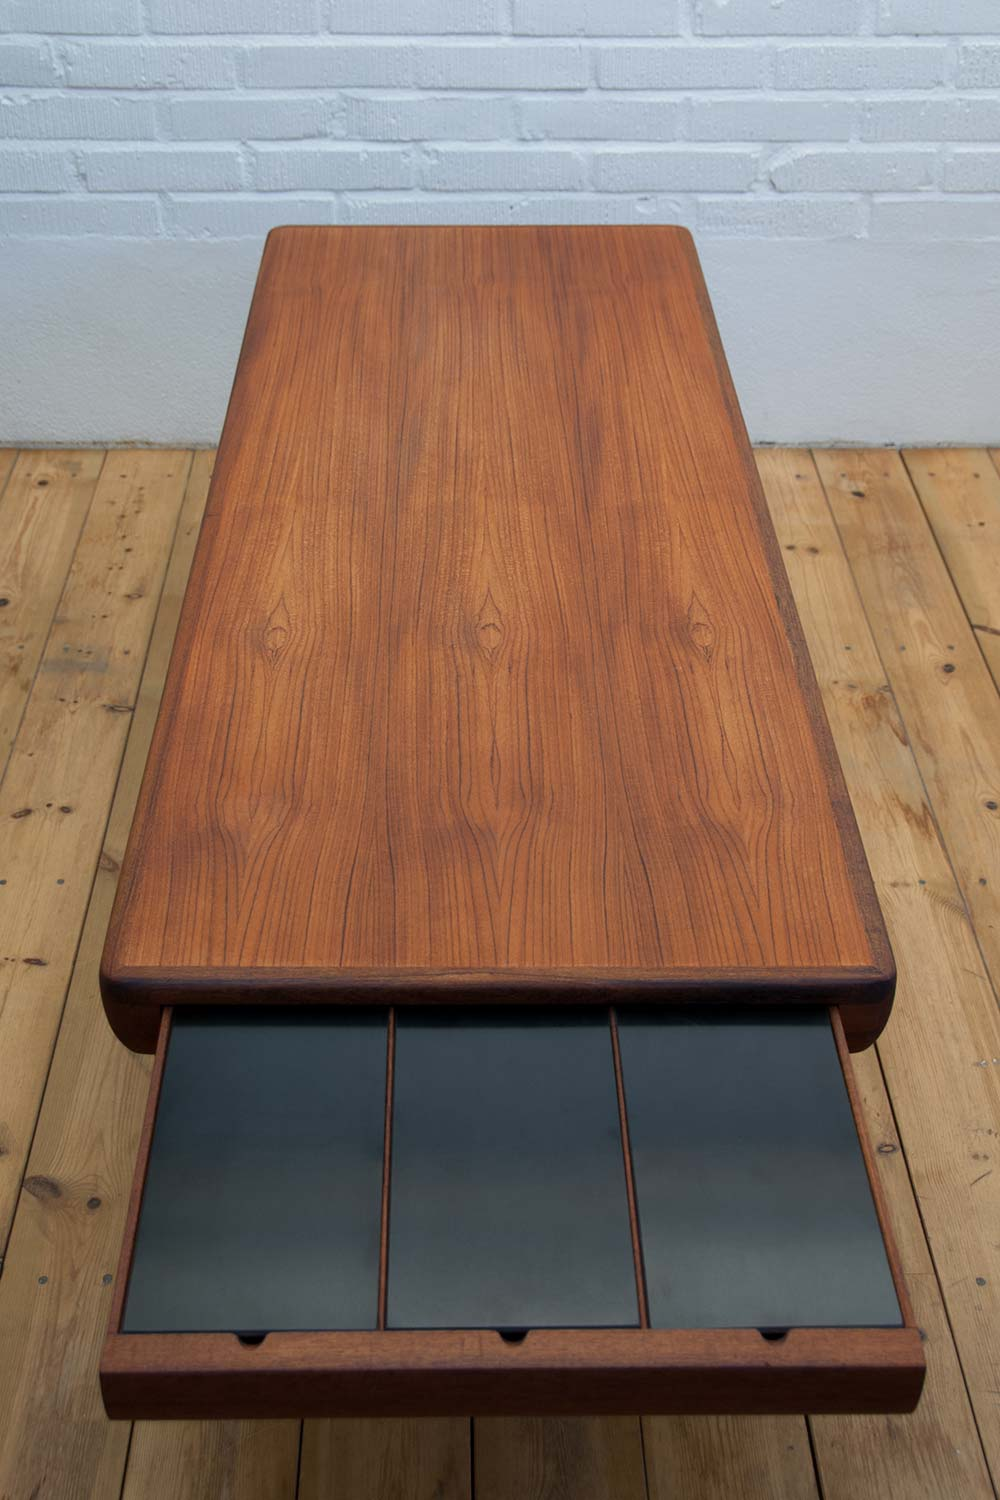 Johannes Andersen Teak coffee table - Scandinavian Design ...